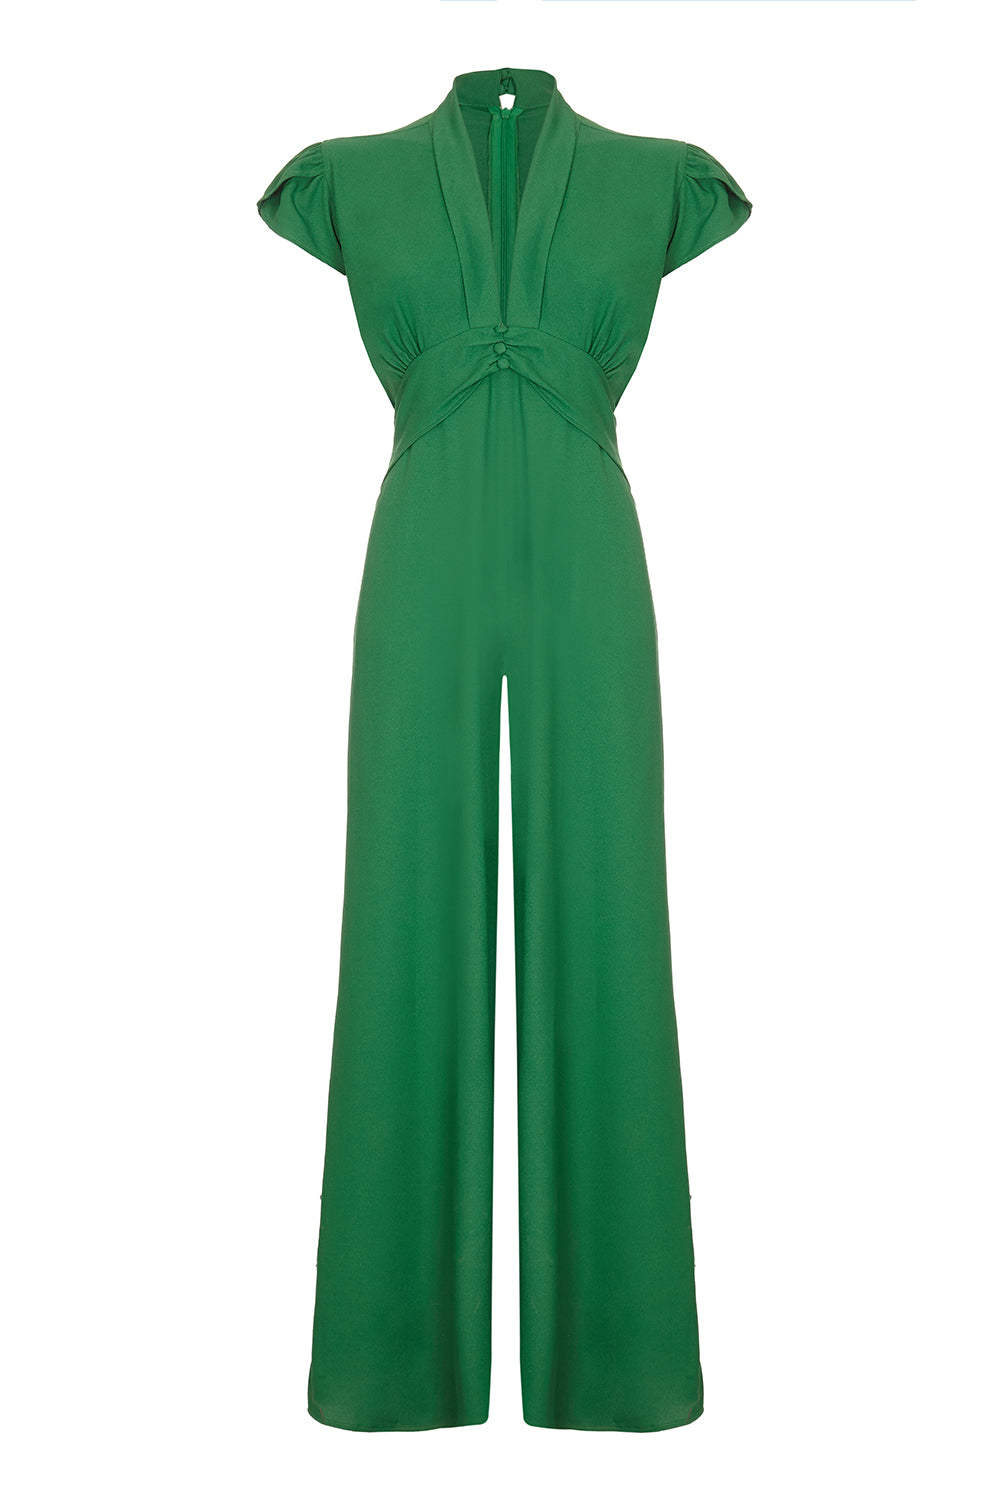 Nancy Mac Sable jumpsuit in Montecarlo green moss crepe - mannequin front